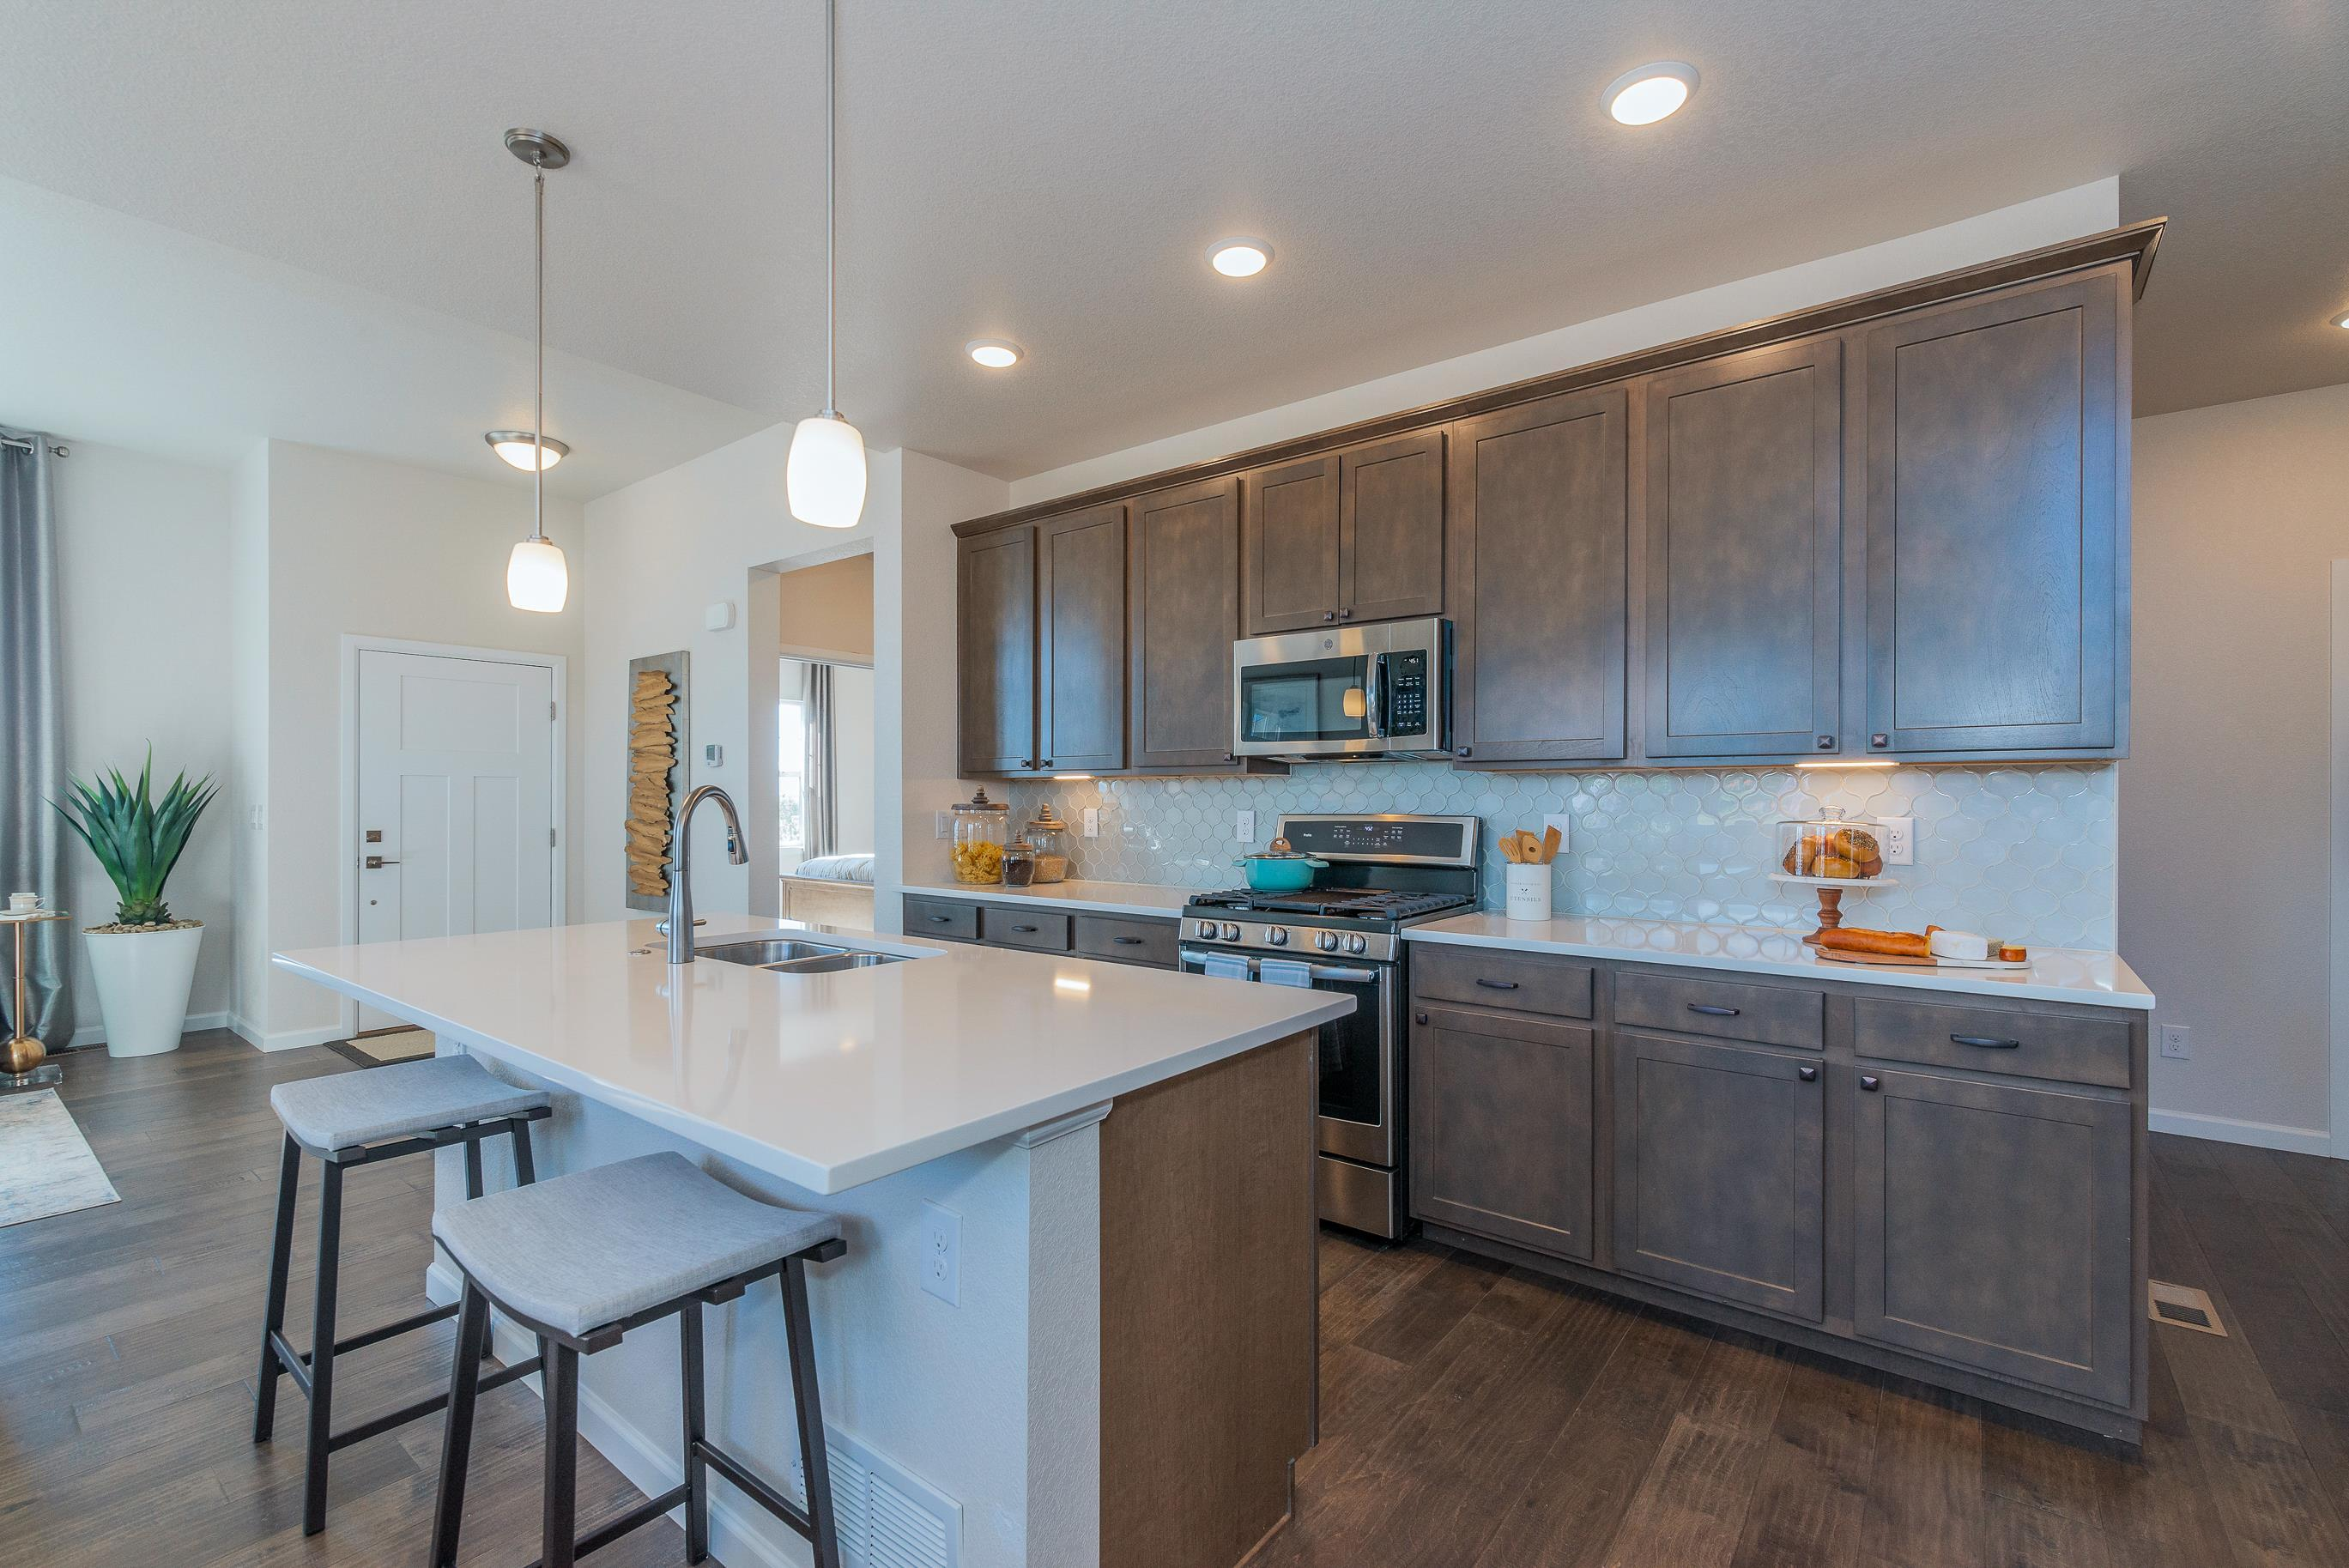 Kitchen featured in The Rose Hill By JM Weston Homes in Denver, CO